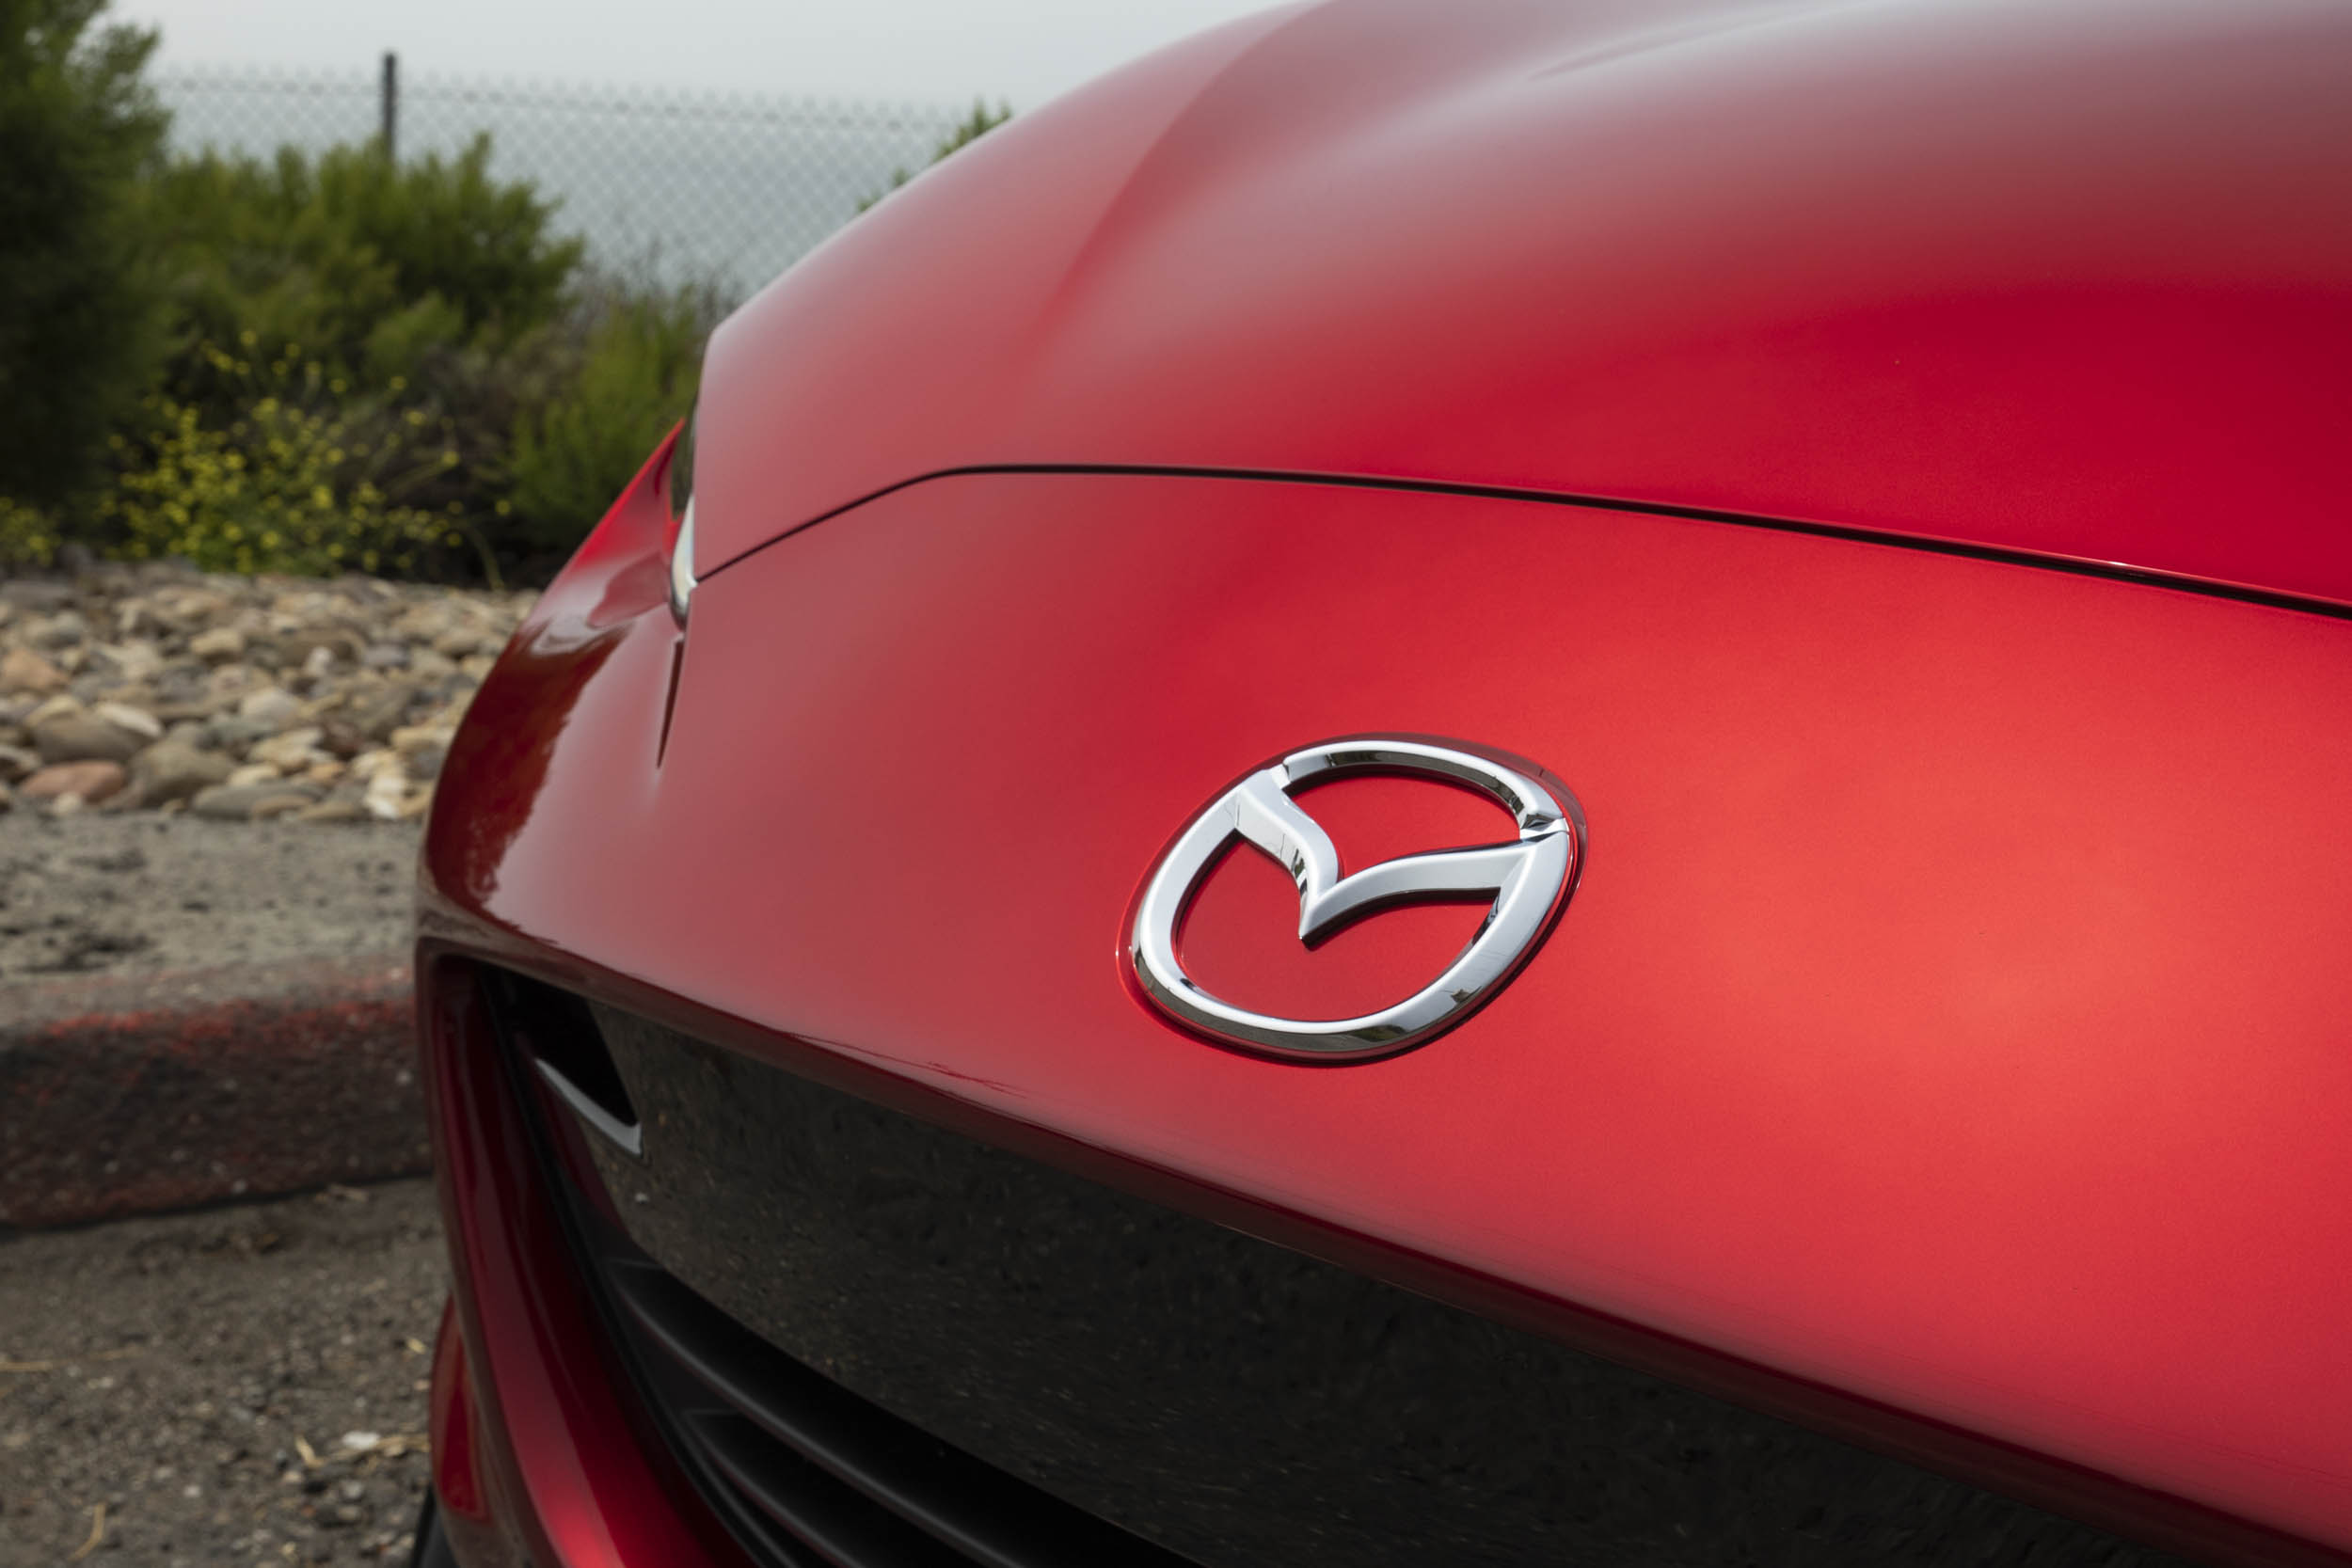 Mazda MX-5 Miata badge